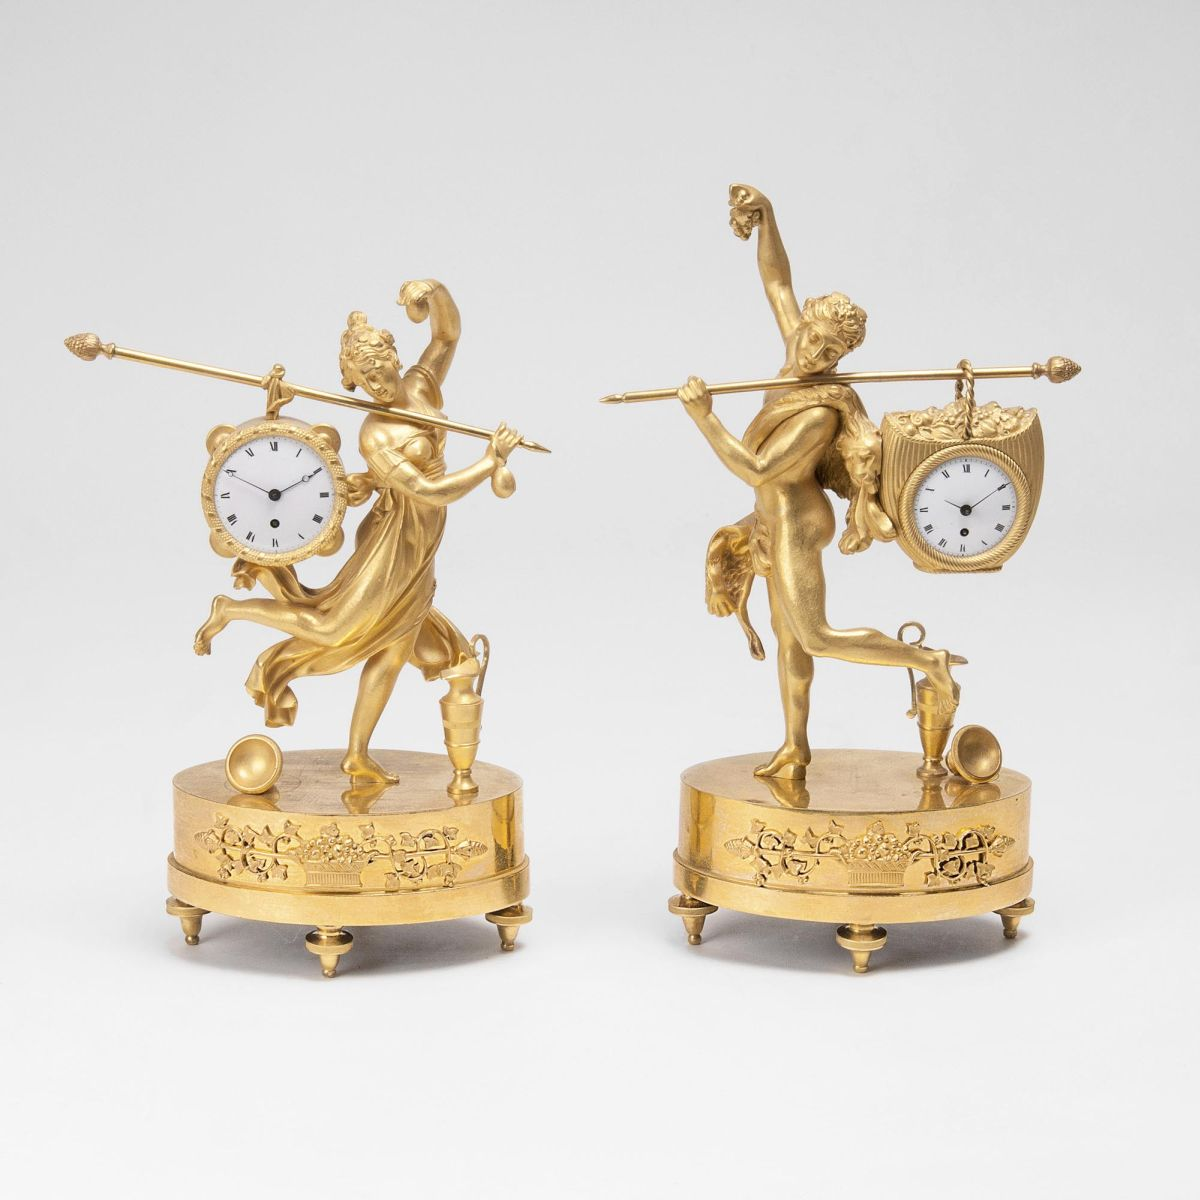 A very rare Pair 'Le Porteur' Empire Tableclocks 'Dancing Omphale' and 'Hercules'